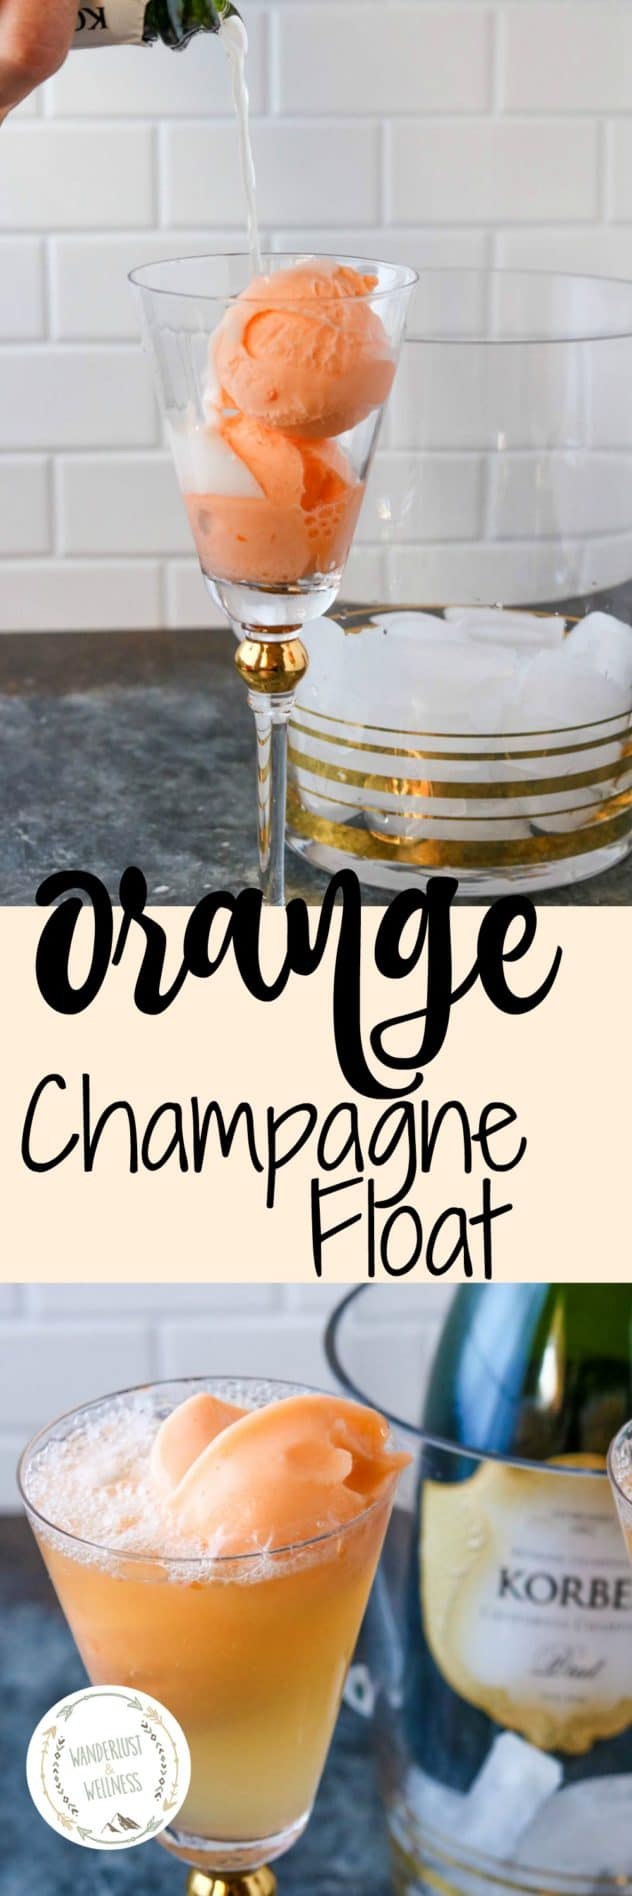 Orange Sherbet Champagne Float